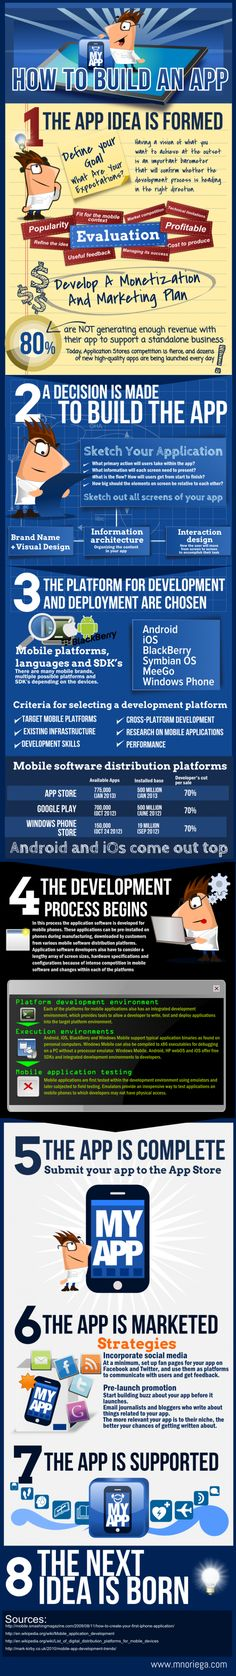 How To Build A Mobile App [Infographic]